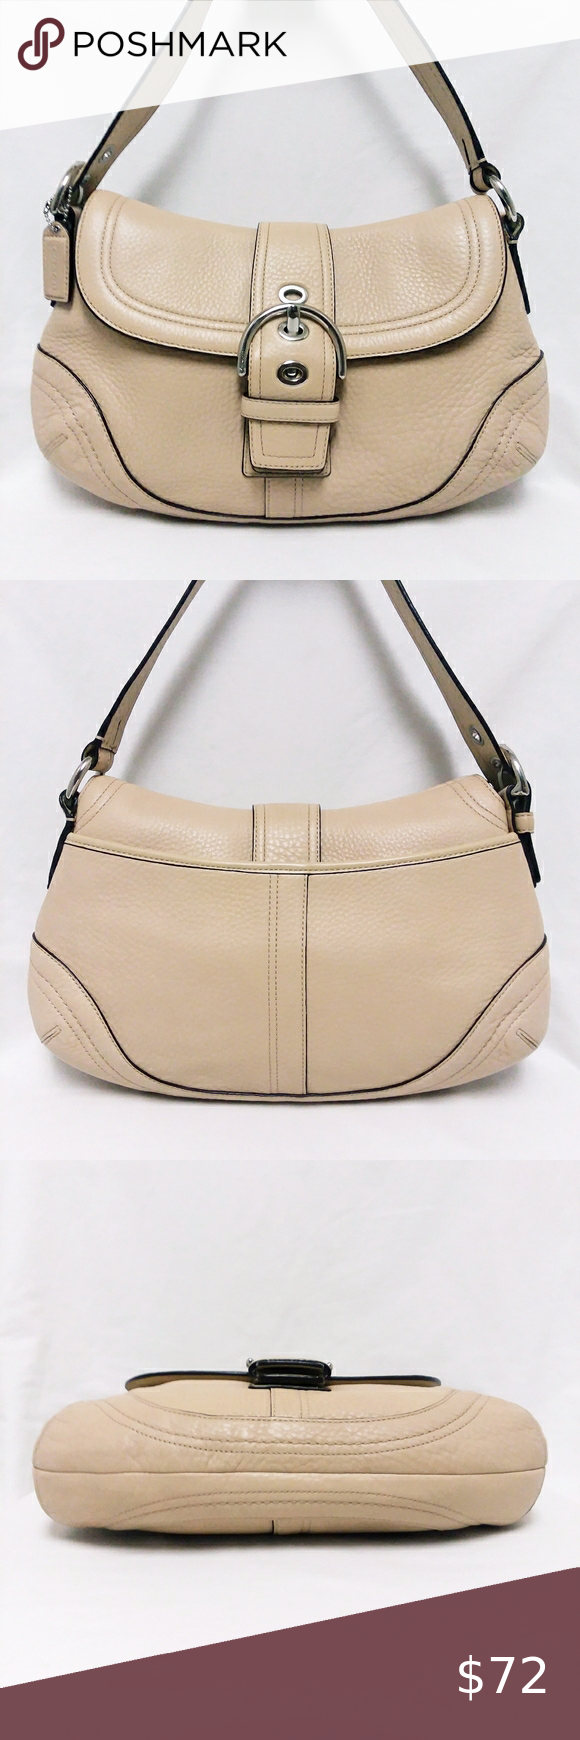 Coach Tan Leather Signature Hobo Bag 100% authentic. Serial number A0878-F10910. Tan leather large hobo bag. This handbag was very well maintained. No stains on the inside or outside and no cracks or peeling on the leather. Super clean with no flaws. This handbag is in good condition.  **All items listed in this closet are authentic and in good condition. Coach Bags Hobos